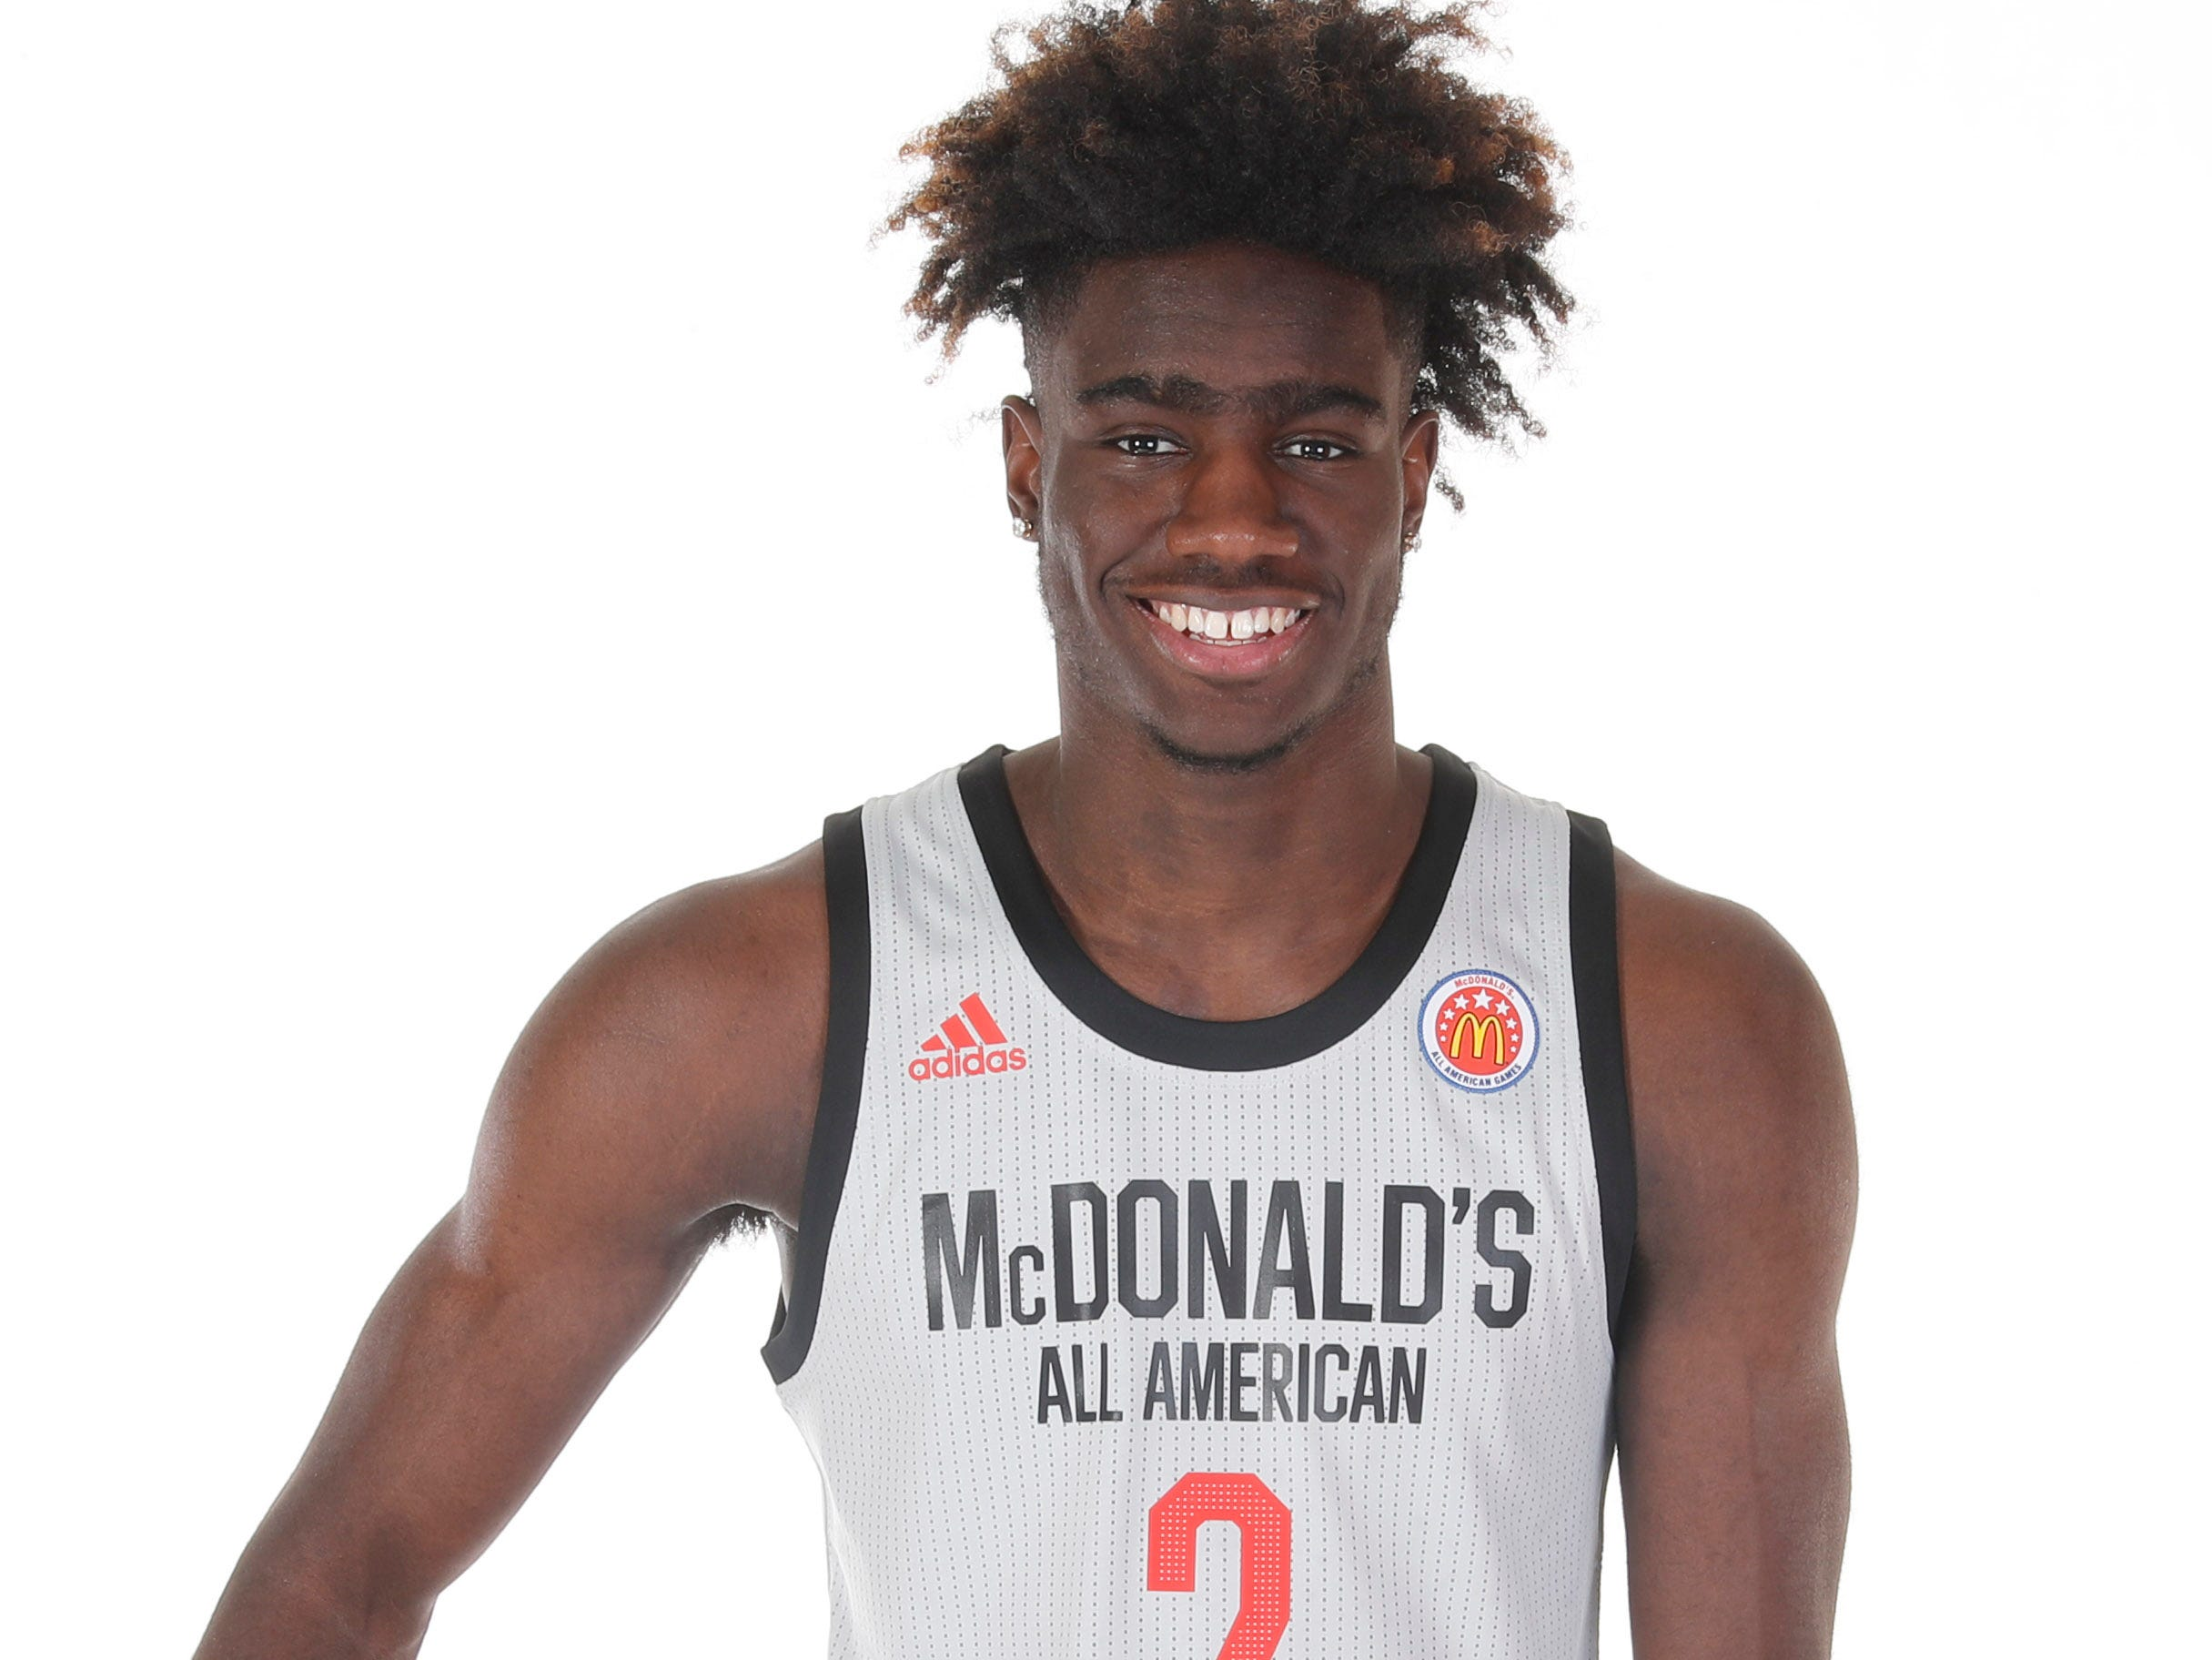 Mar 23, 2019; Atlanta, GA, USA; McDonalds High School All American forward Kahlil Whitney (2) poses for a photo on portrait day at the Hilton Hotel Crystal Ball Room before the 2019 McDonalds All American Game. Mandatory Credit: Brian Spurlock-McDonalds